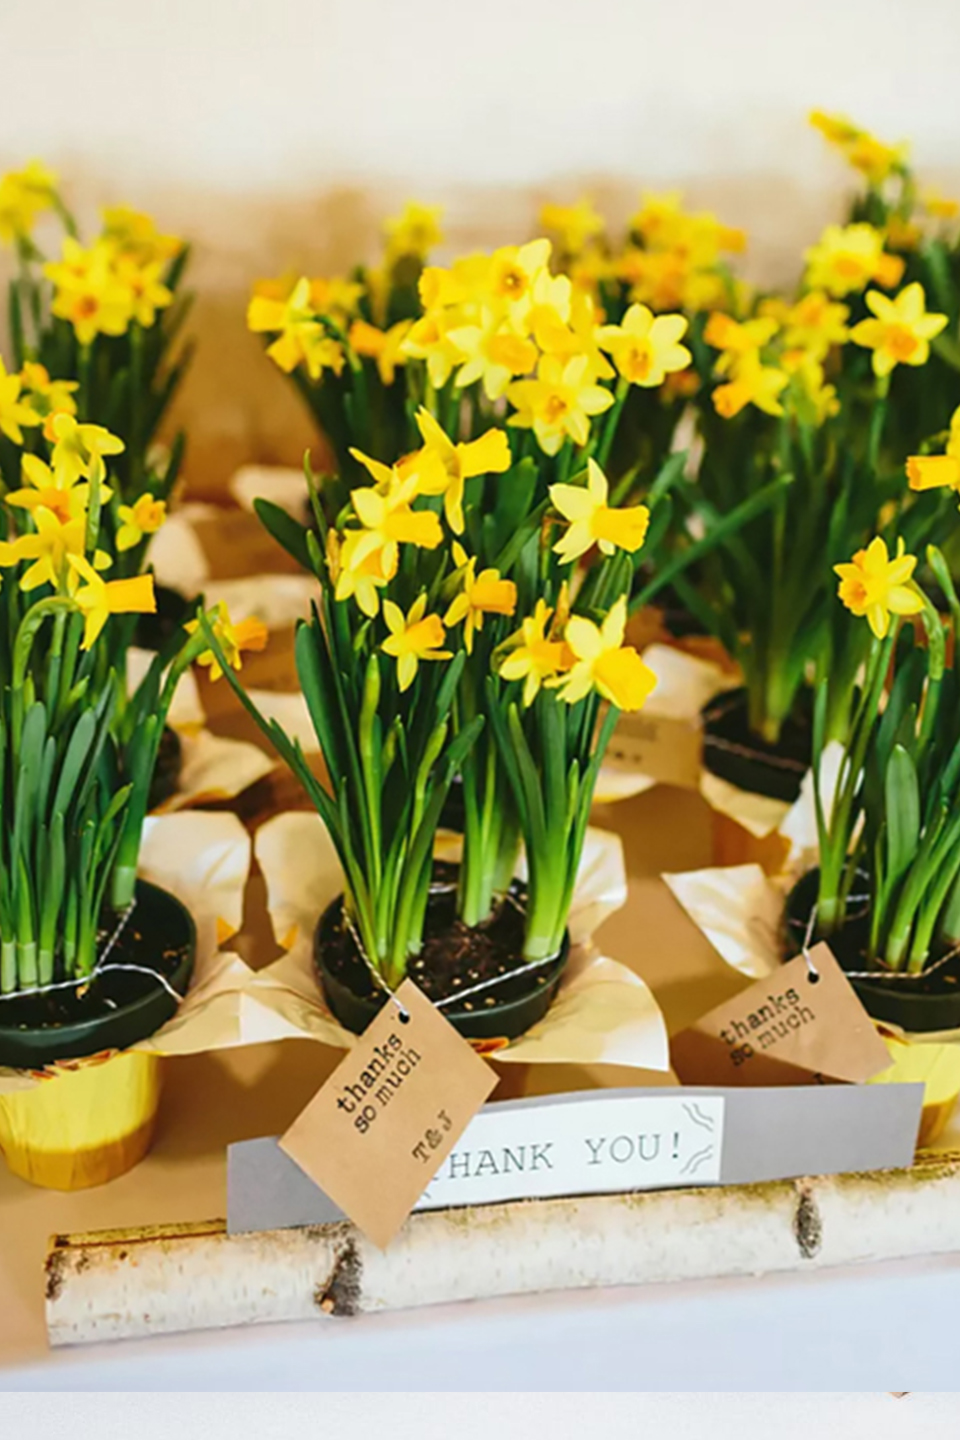 Newlyweds gave a pot of daffodils for their spring wedding favours at Bassmead Manor Barns